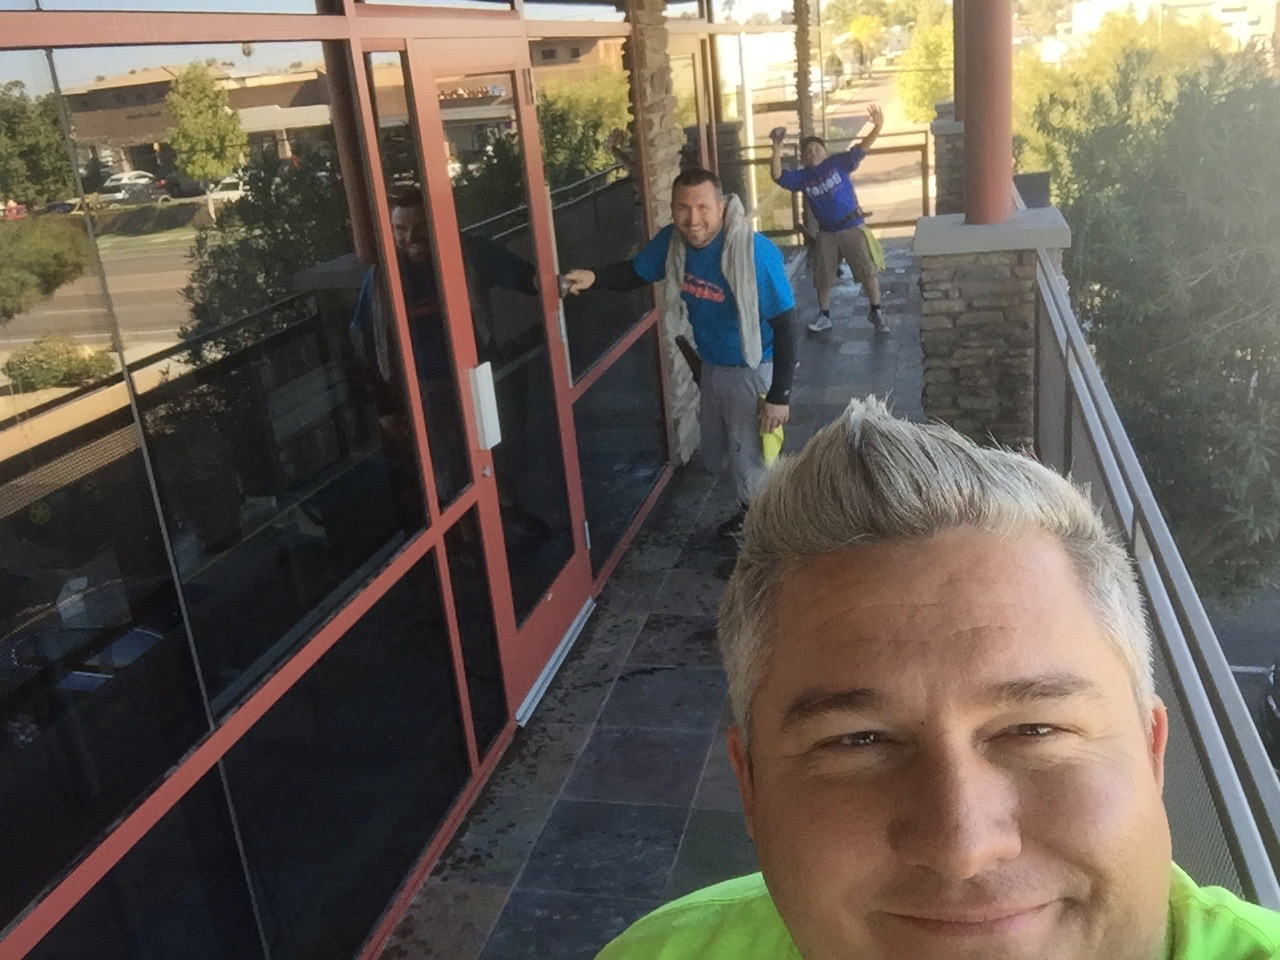 Commercial window washing in AZ